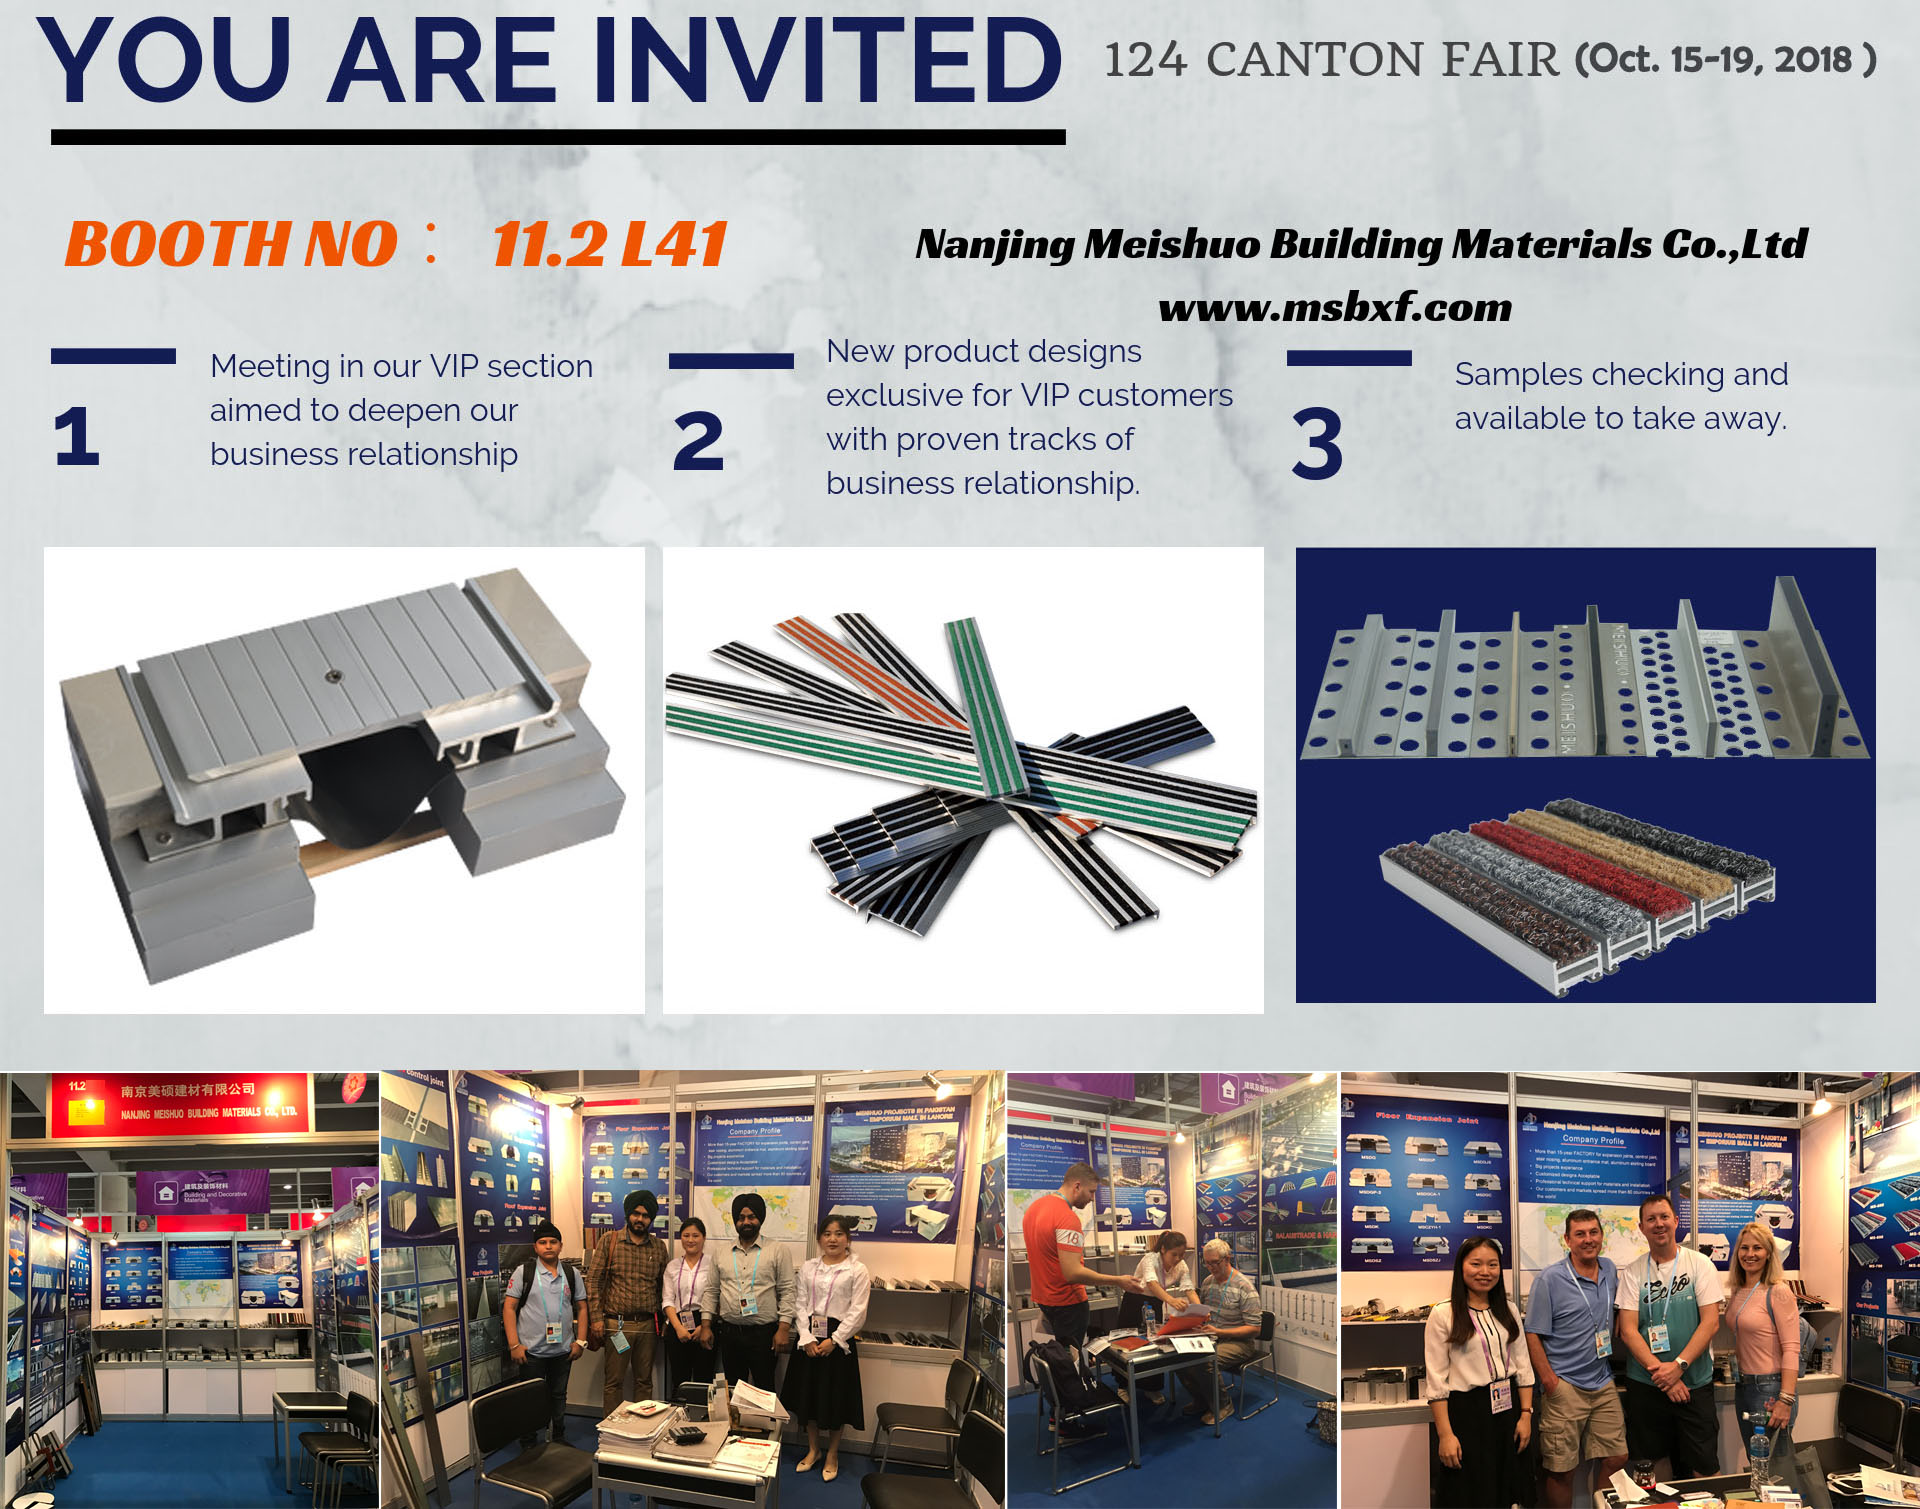 You are invited! Meet us in 124th CANTON FAIR